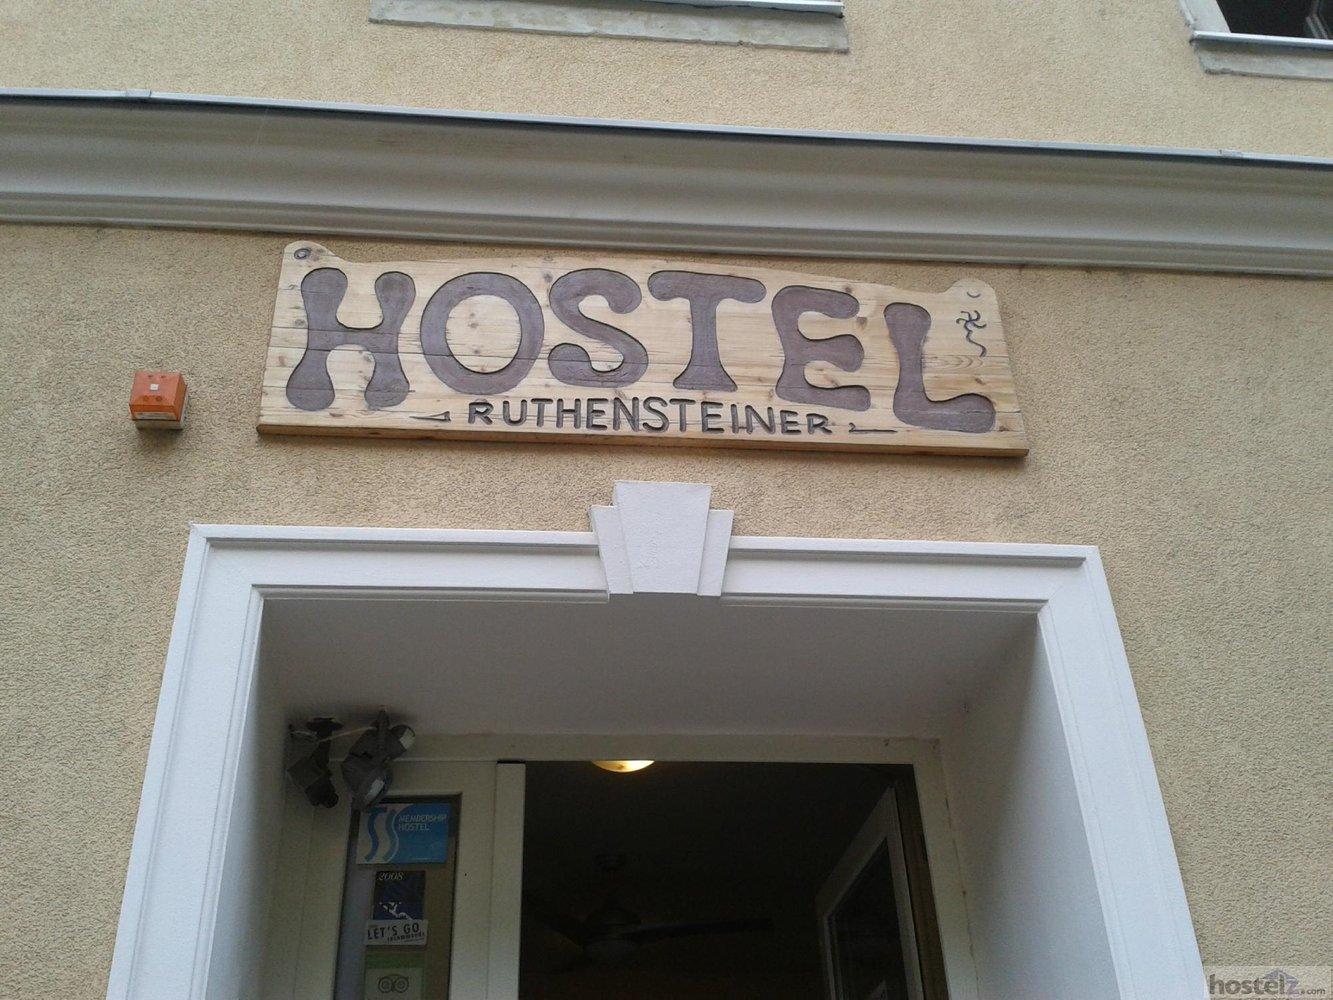 The front of the hostel.